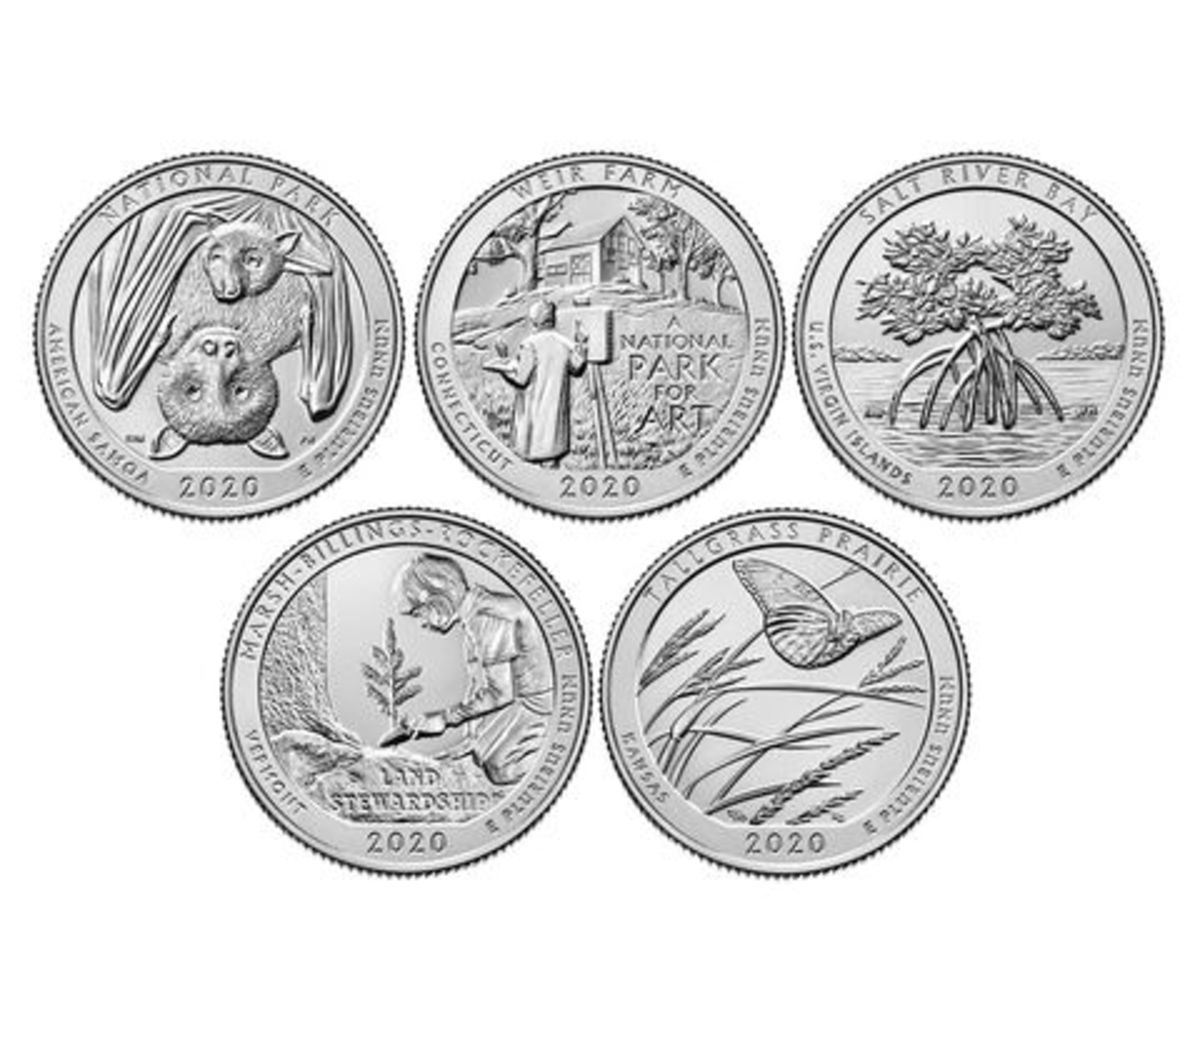 The 2020 America the Beautiful circulating set is the program's final five-coin set. (Images courtesy U.S. Mint.)